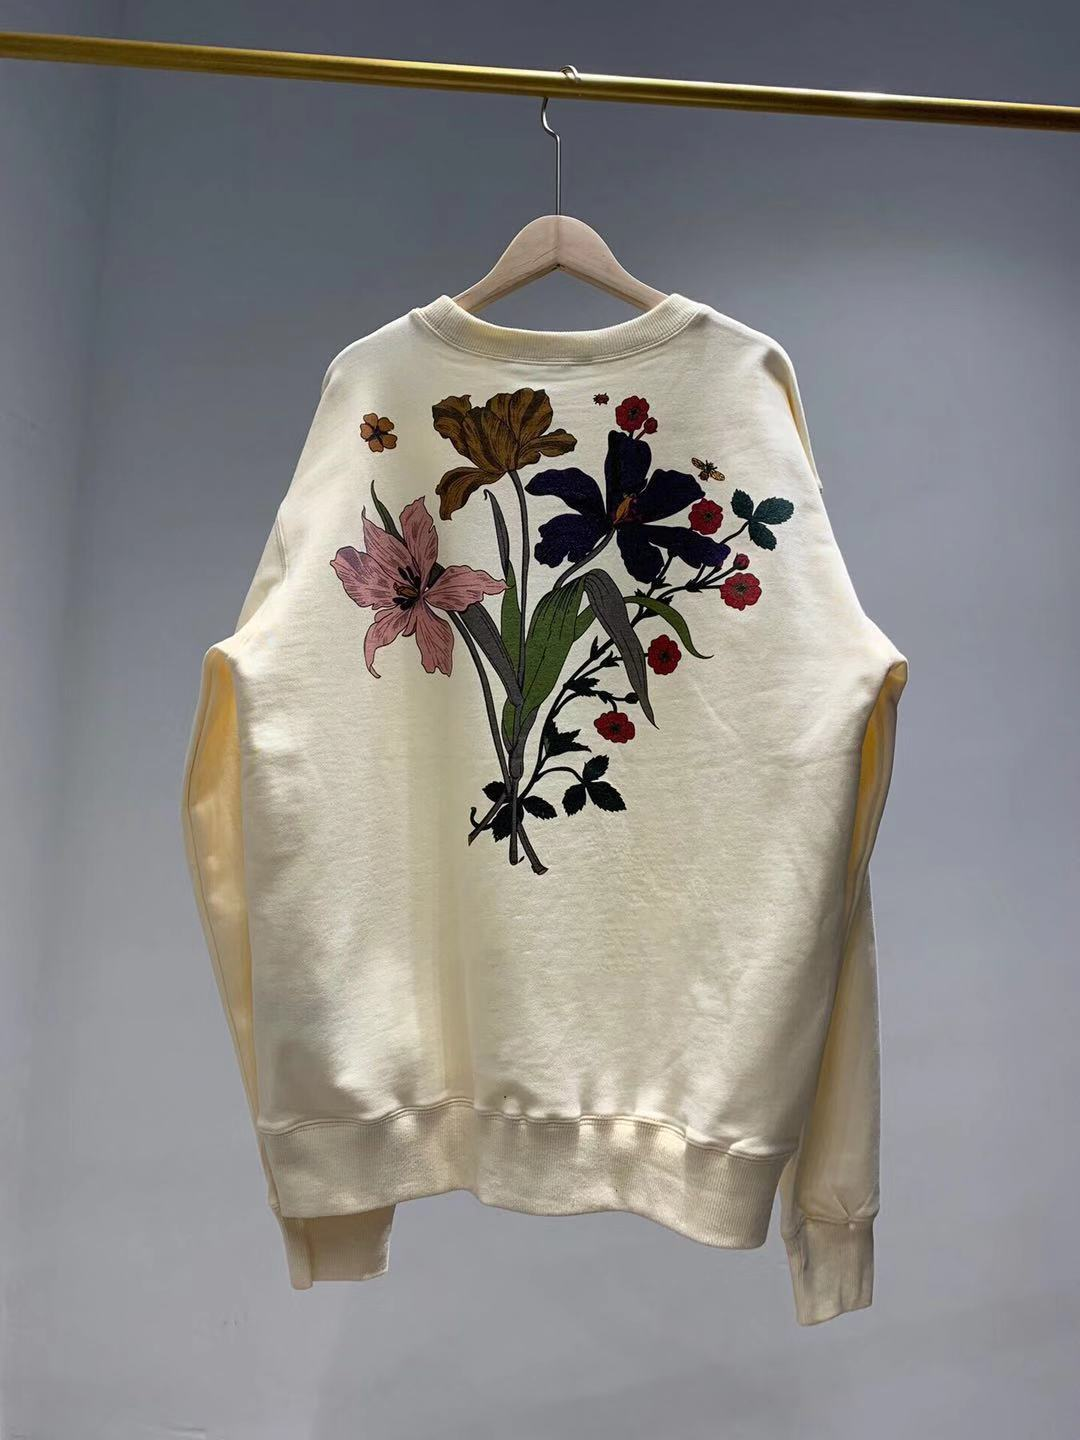 2019 Women's Floral Letter Print Casual Sweatshirt Long-sleeved Sweatshirt Casual Fashion Chateau Marmont Hollywood G1